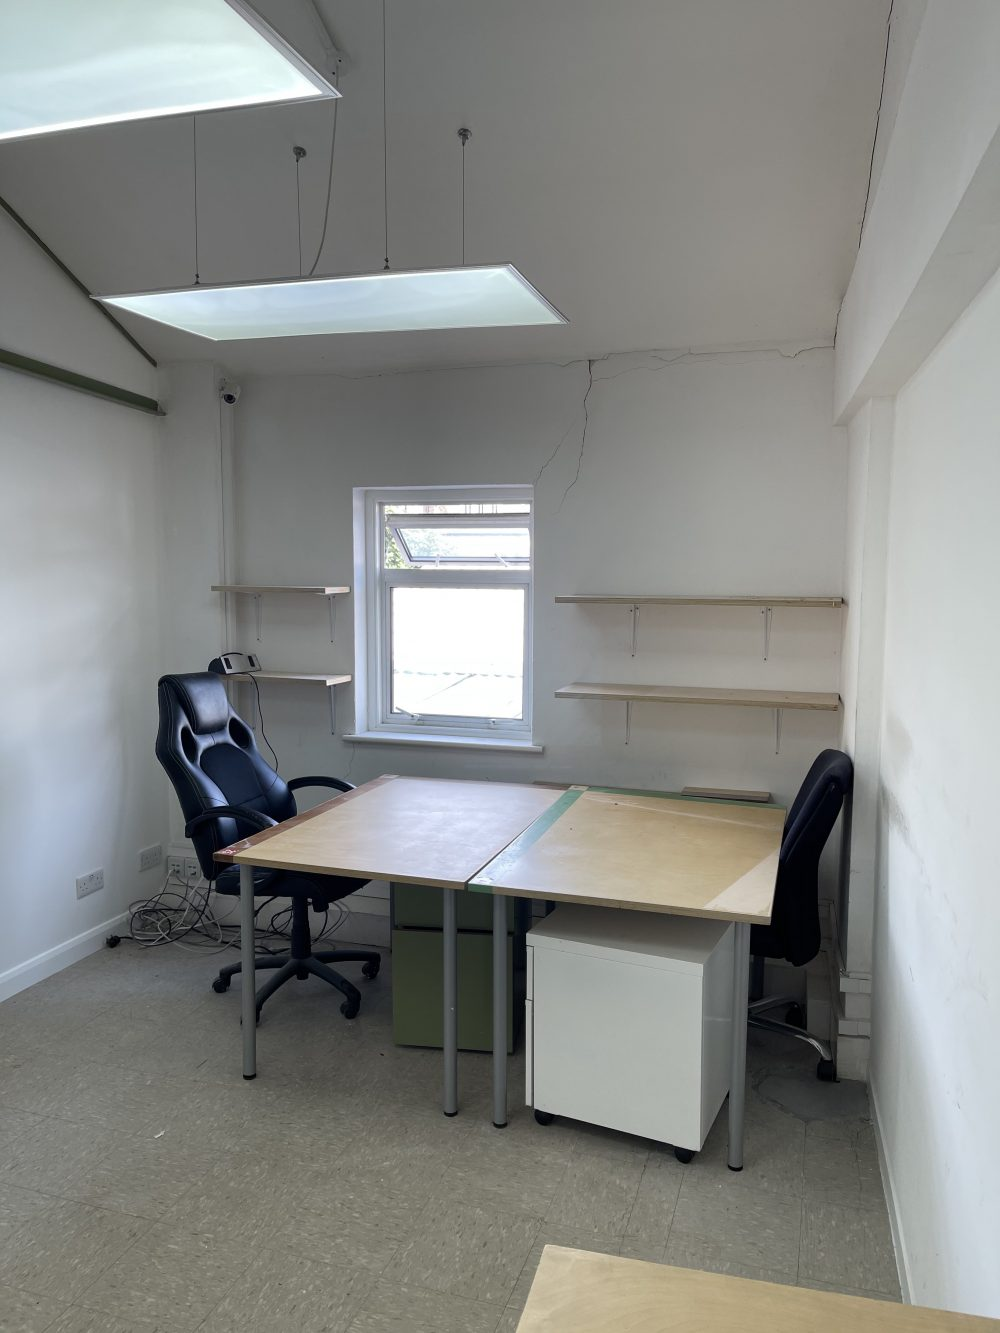 Studio Available to rent in N16 Green Lane Pic3